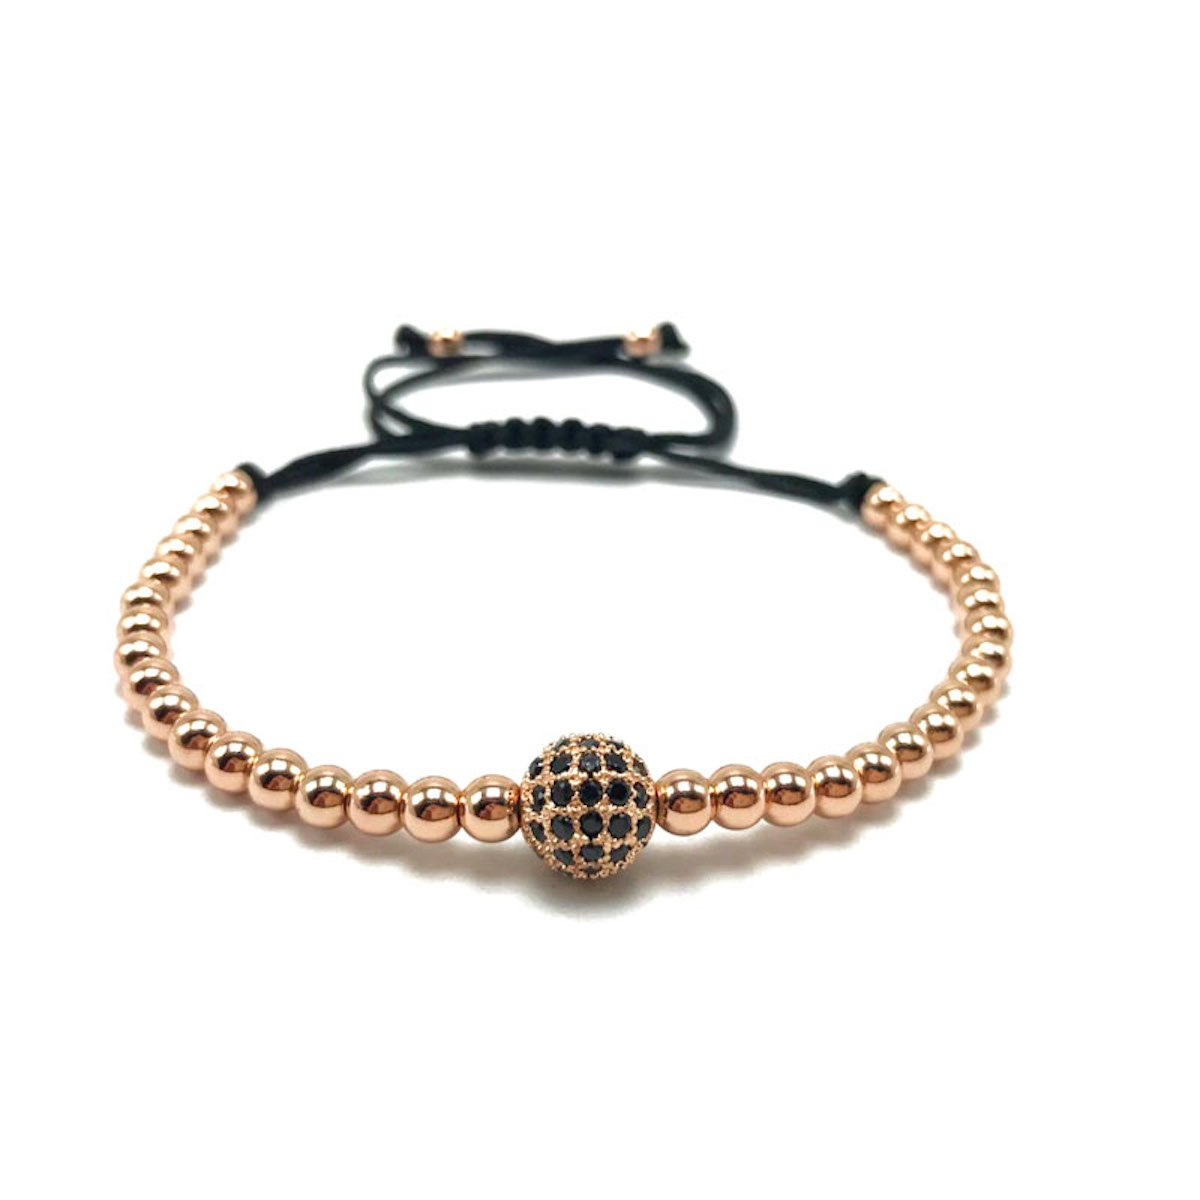 Micro Pave 8mm CZ Macrame Braided Bracelet with 4mm Round Copper Beads by MayaBracelets (Rose Gold)